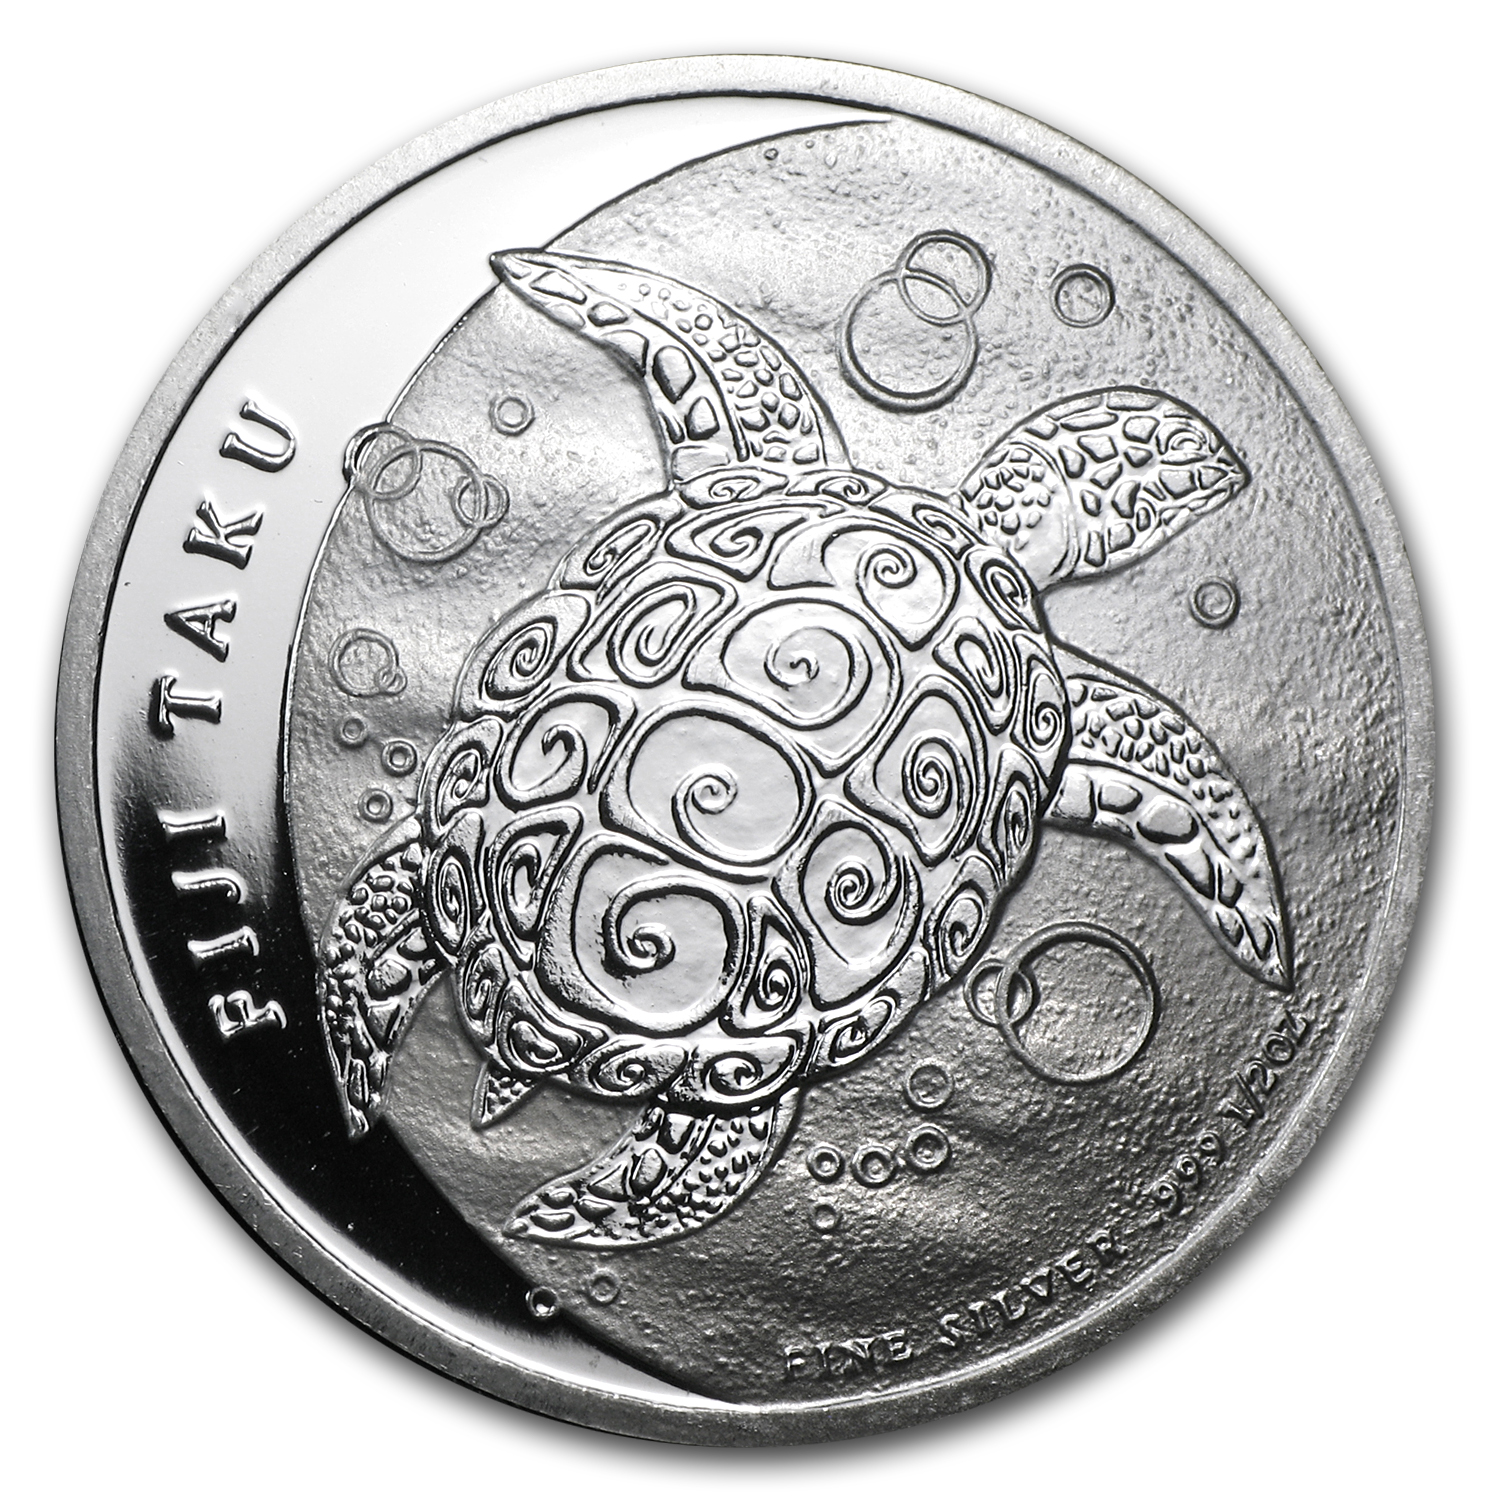 2012 1/2 oz Silver New Zealand Mint $1 Fiji Taku